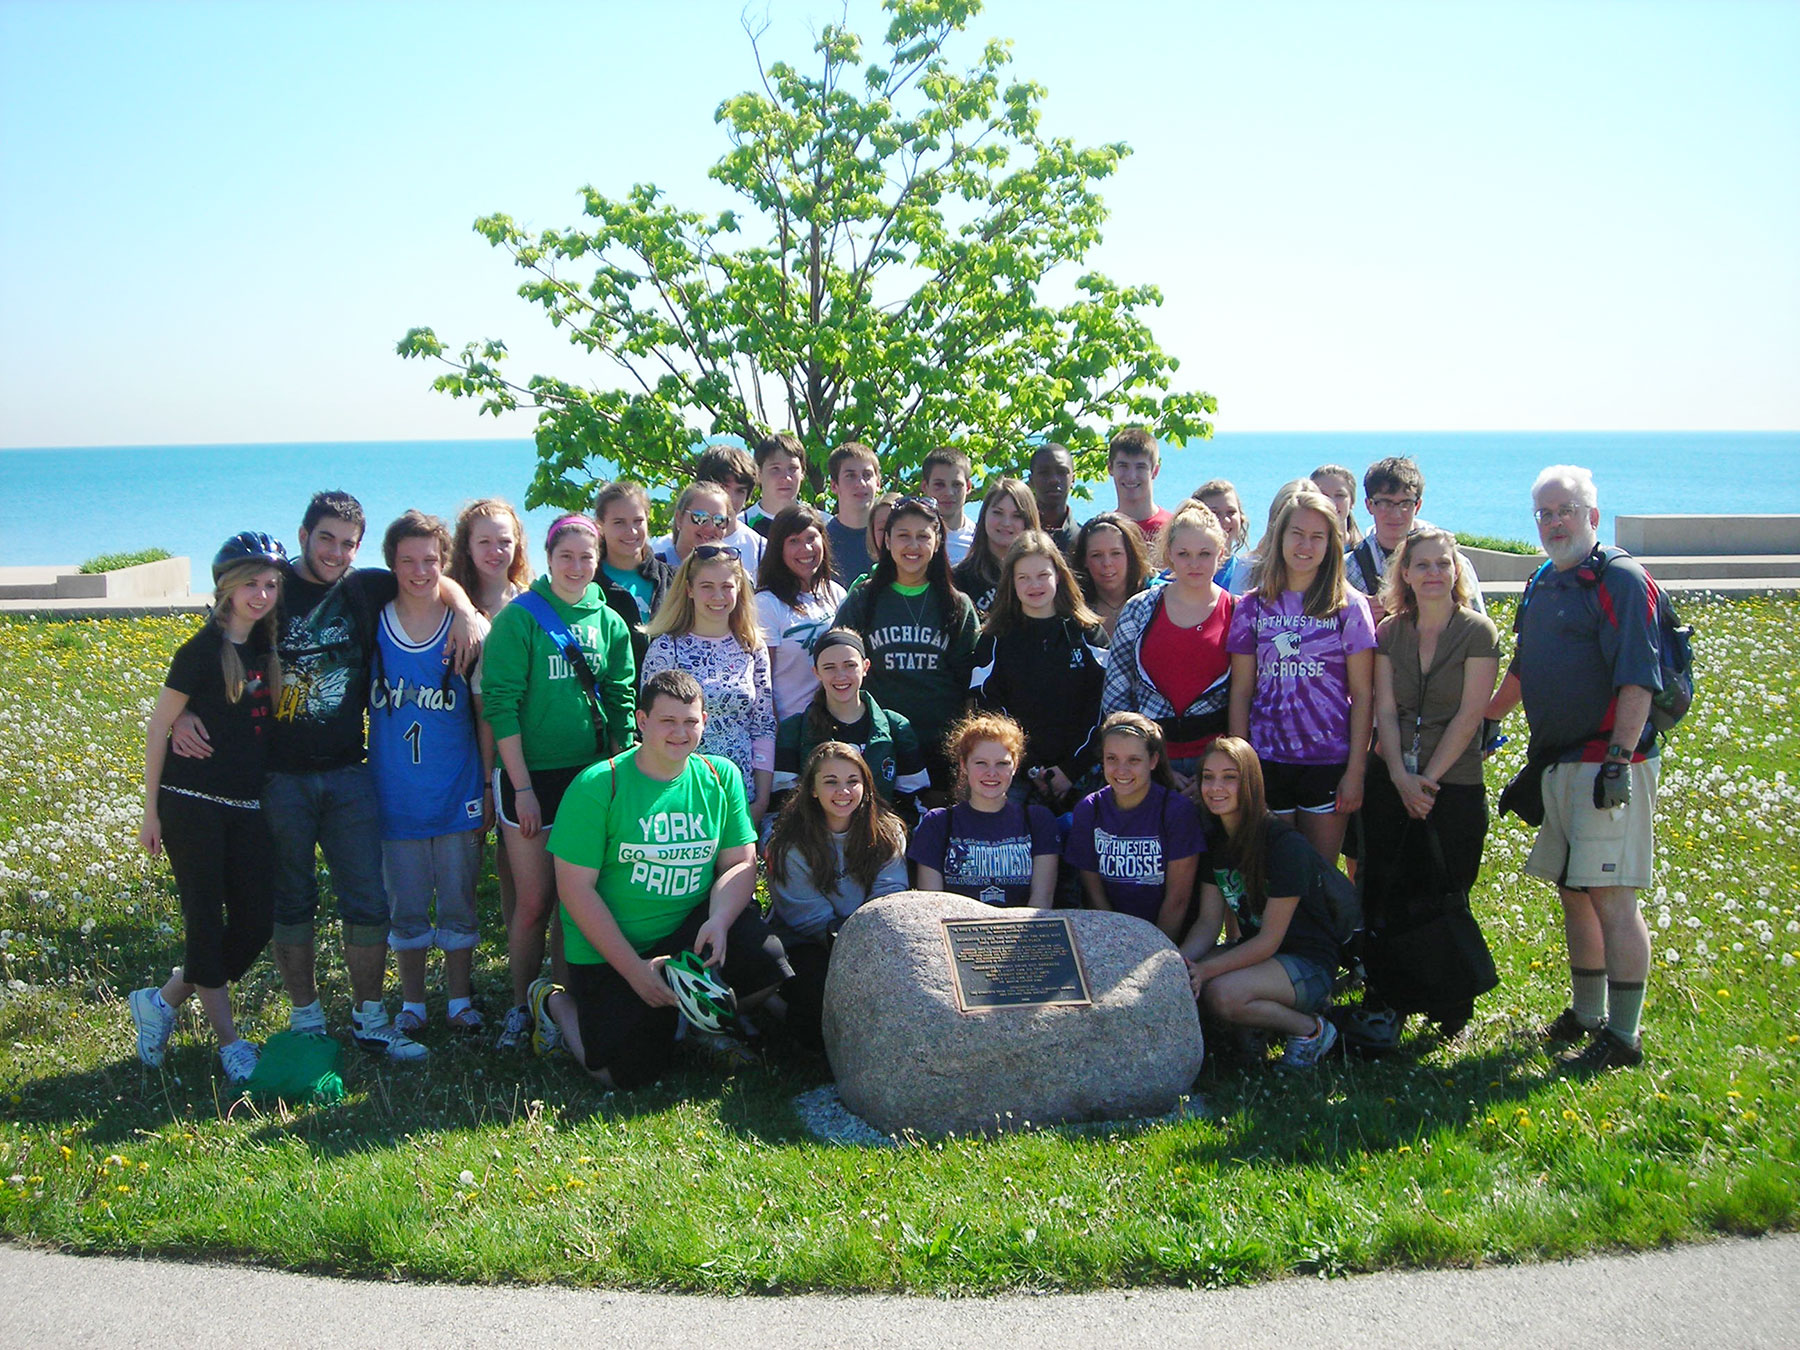 In 2009, Mike Torney and his students from York High School in Elmhurst, IL, underwrote and dedicated a plaque at Chicago's 31st Street Beach commemorating the lives of the victims of Chicago's Race Riot.